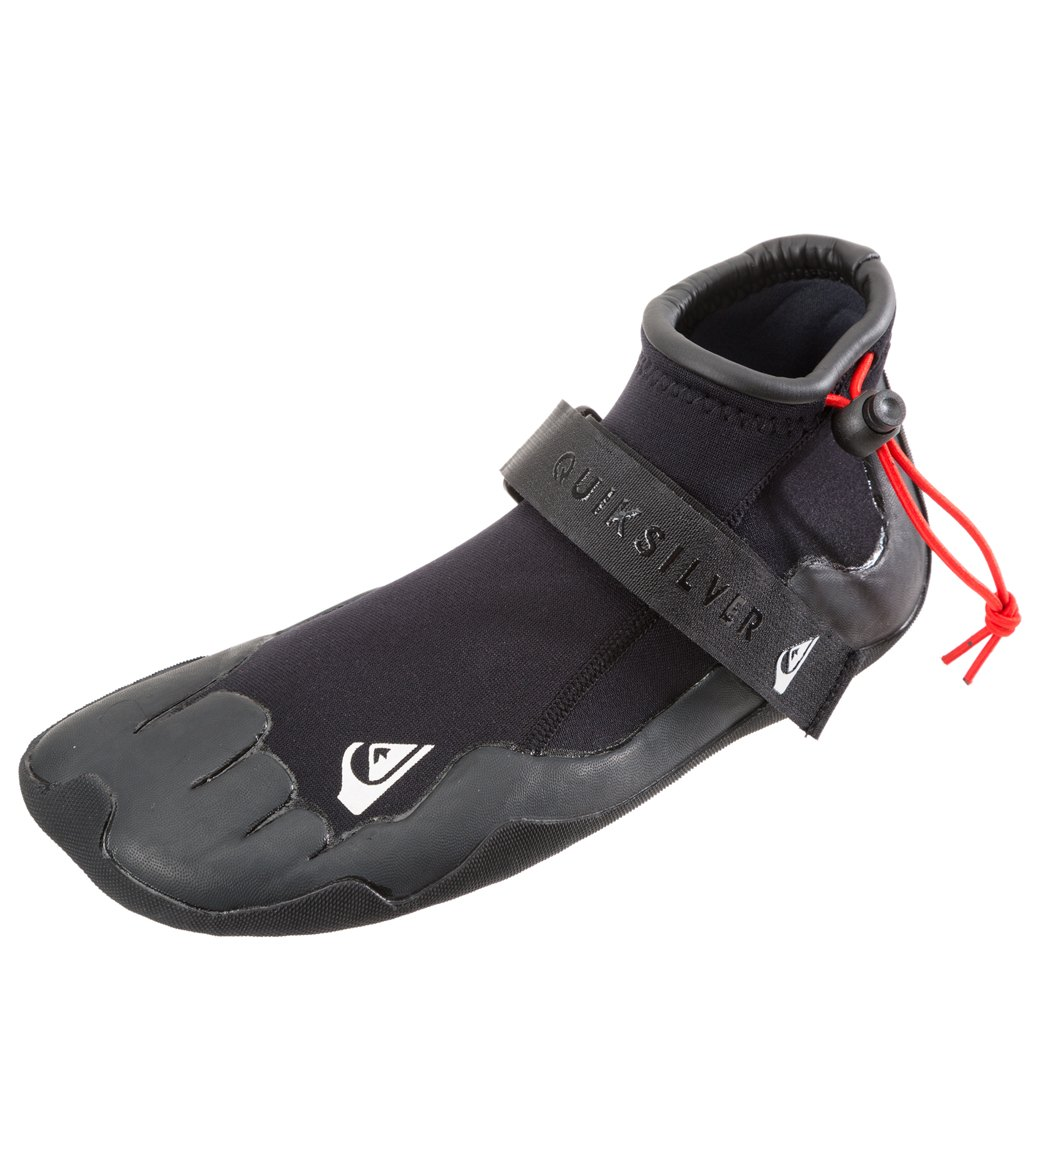 0a26c33f3 Quiksilver Men's 2mm Syncro Round Toe Surf Bootie at SwimOutlet.com